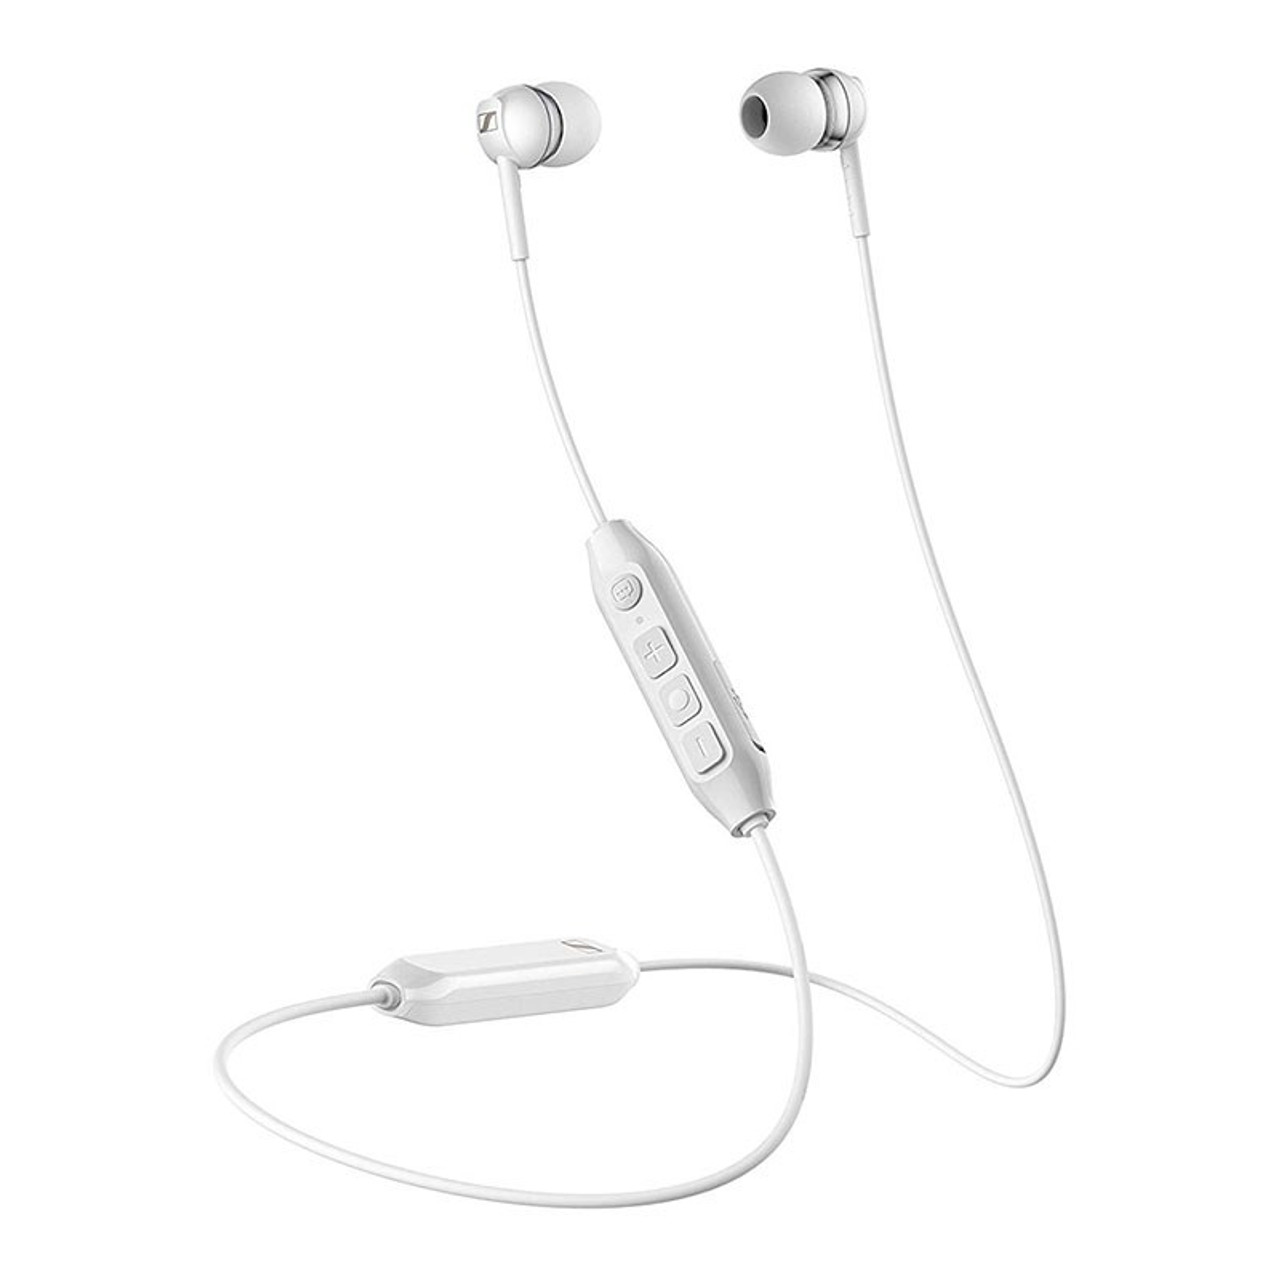 Image for Sennheiser CX 350BT In-Ear Bluetooth Headset With Mic - White CX Computer Superstore